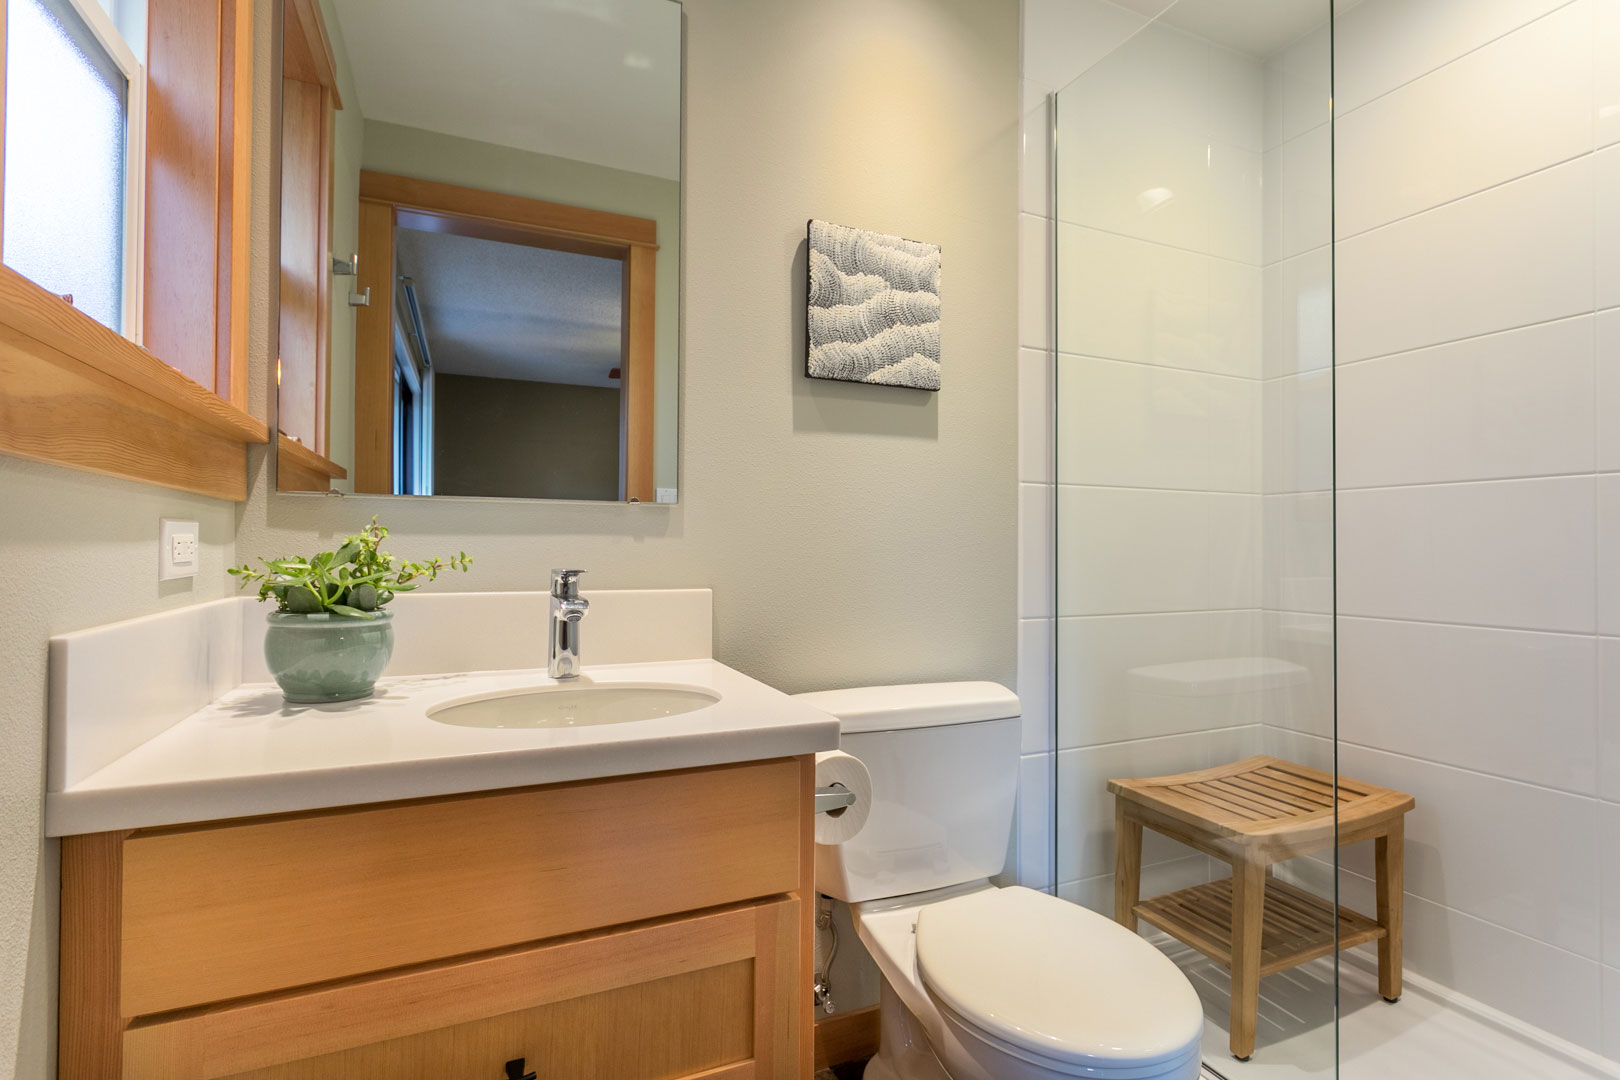 jack and jill updated bathroom remodel - Henderer Design + Build, Corvallis OR